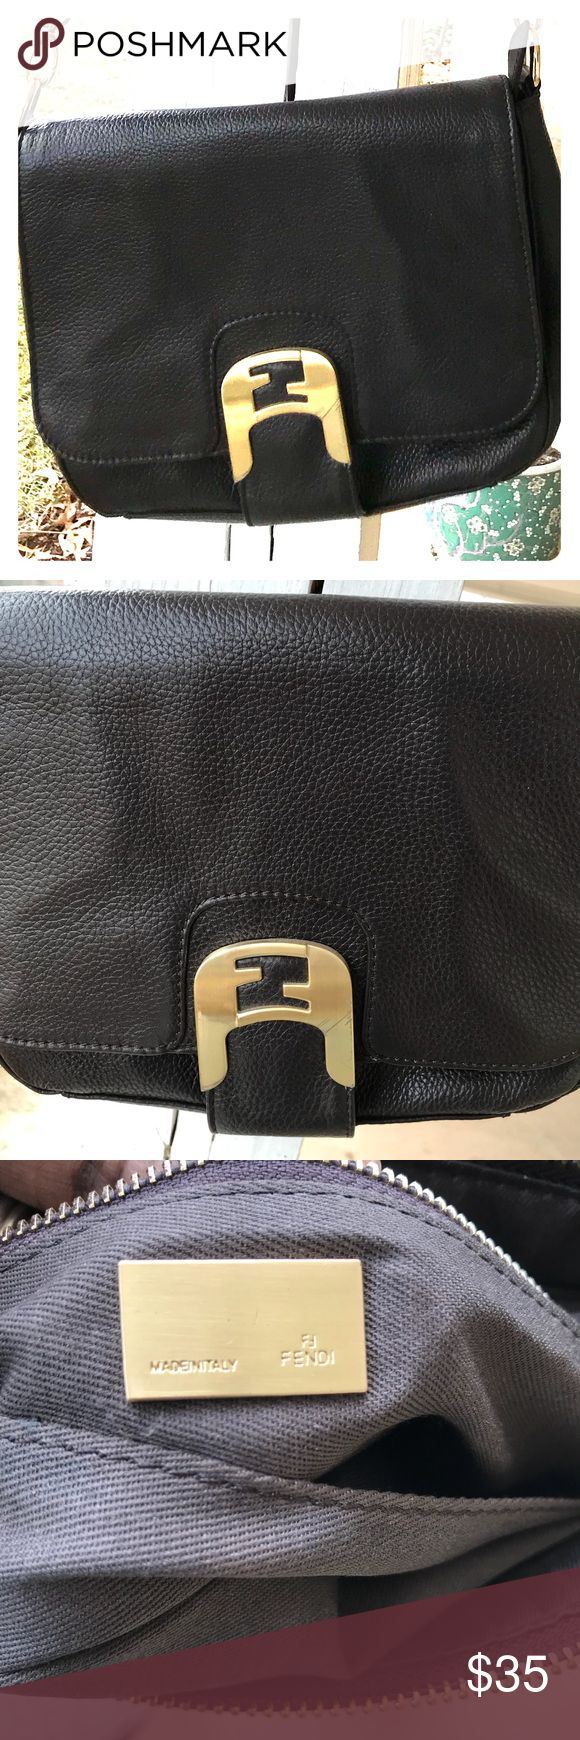 Fendi cross body Beautiful brown leather bag. Price reflects uncertainty of authenticity. Long adjustable strap. Fendi Bags